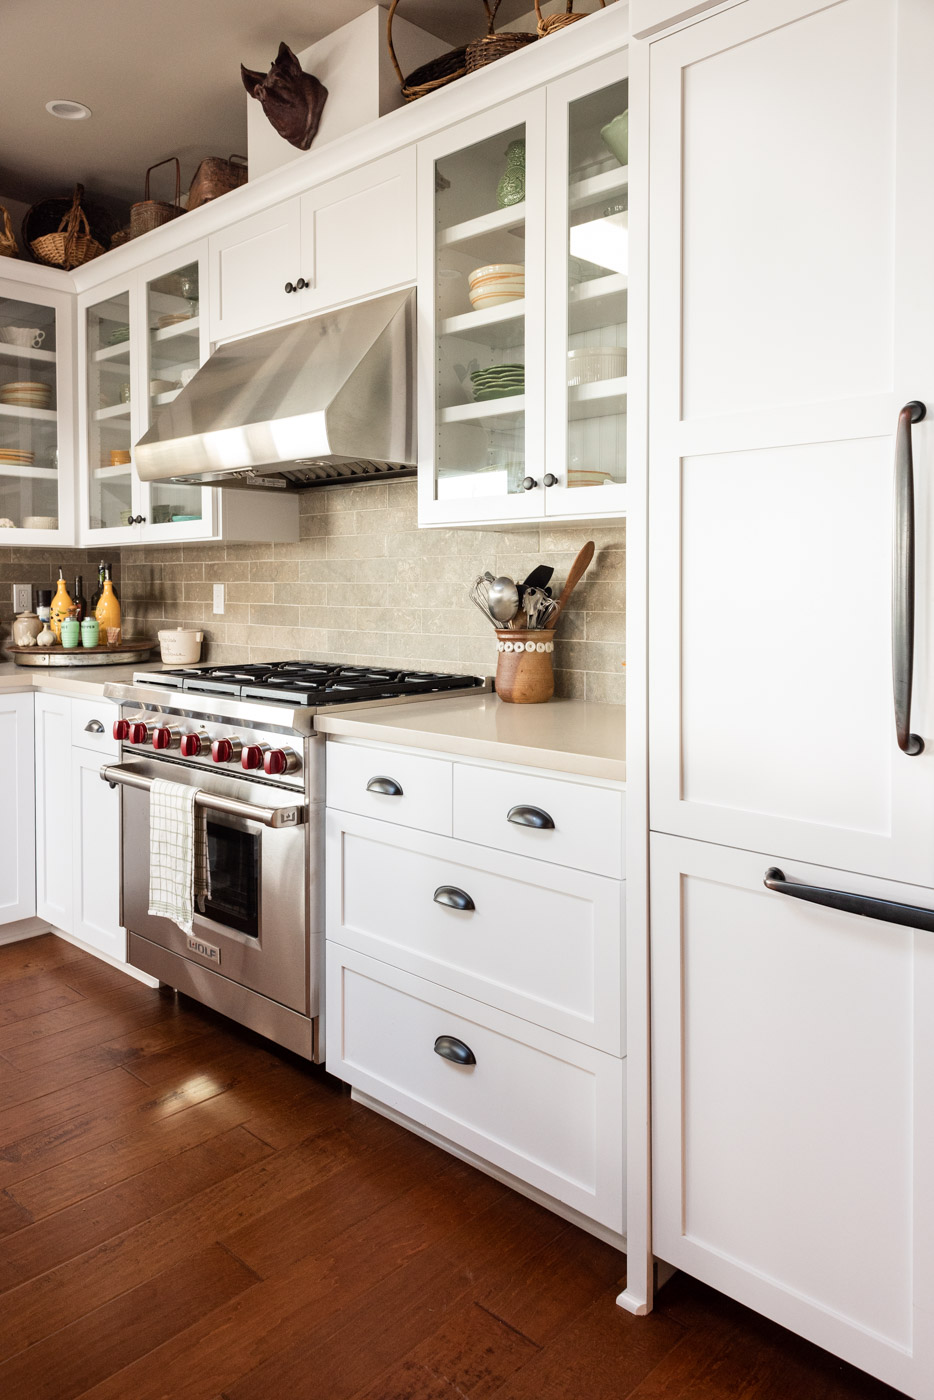 Coastal Craftsman kitchen with custom white painted shaker cabinets